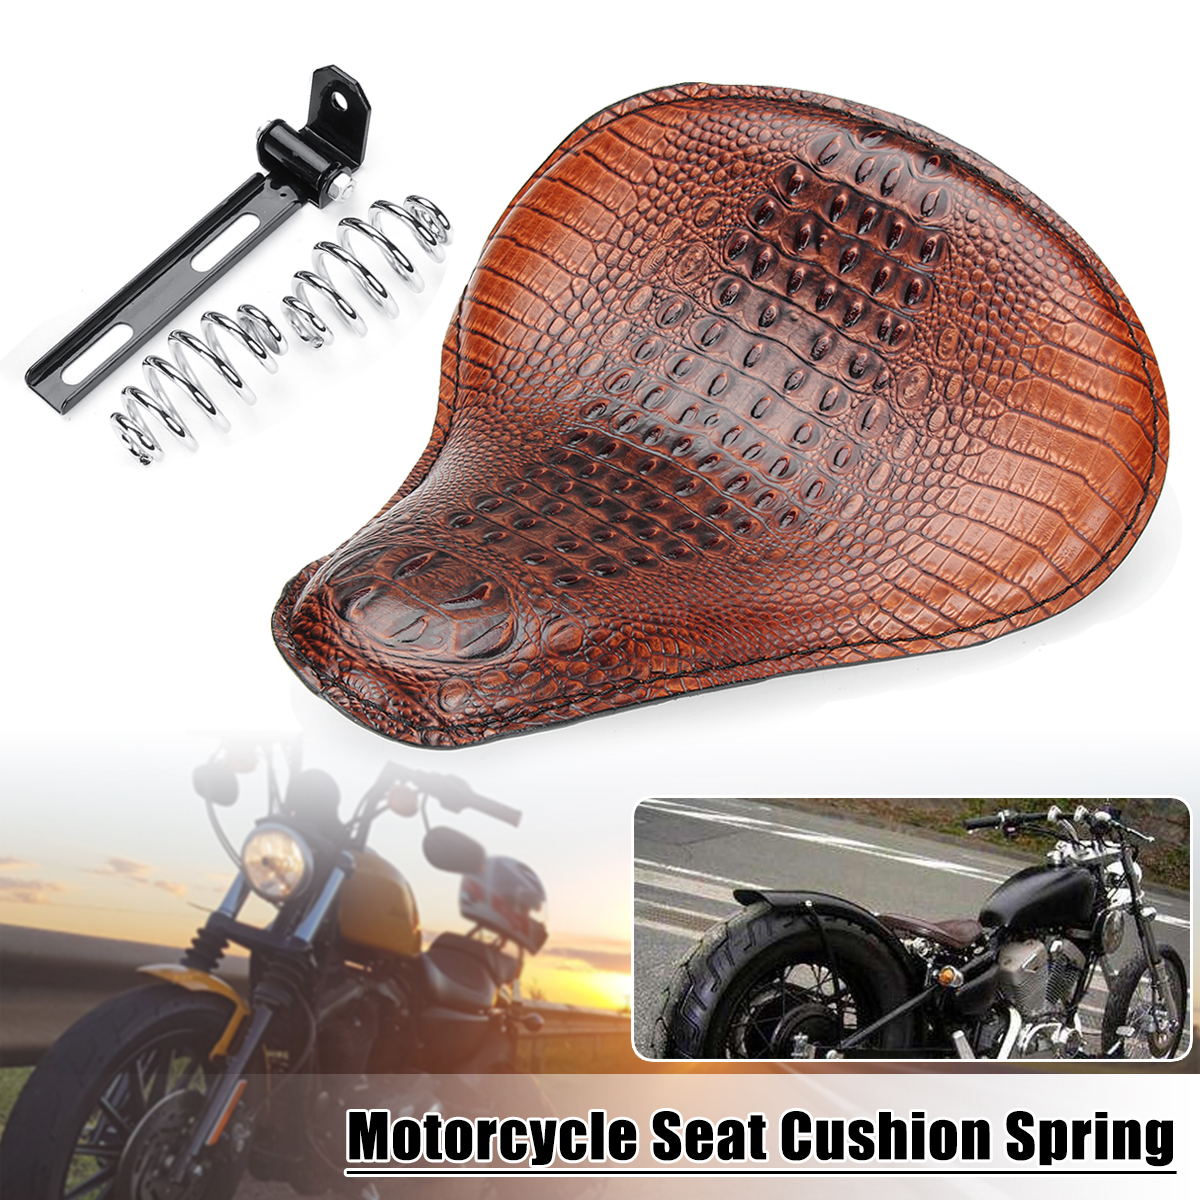 Motorcycle Solo Seat Spring Kit For Yamaha V Star 1300 1100 950 650 250 Classic